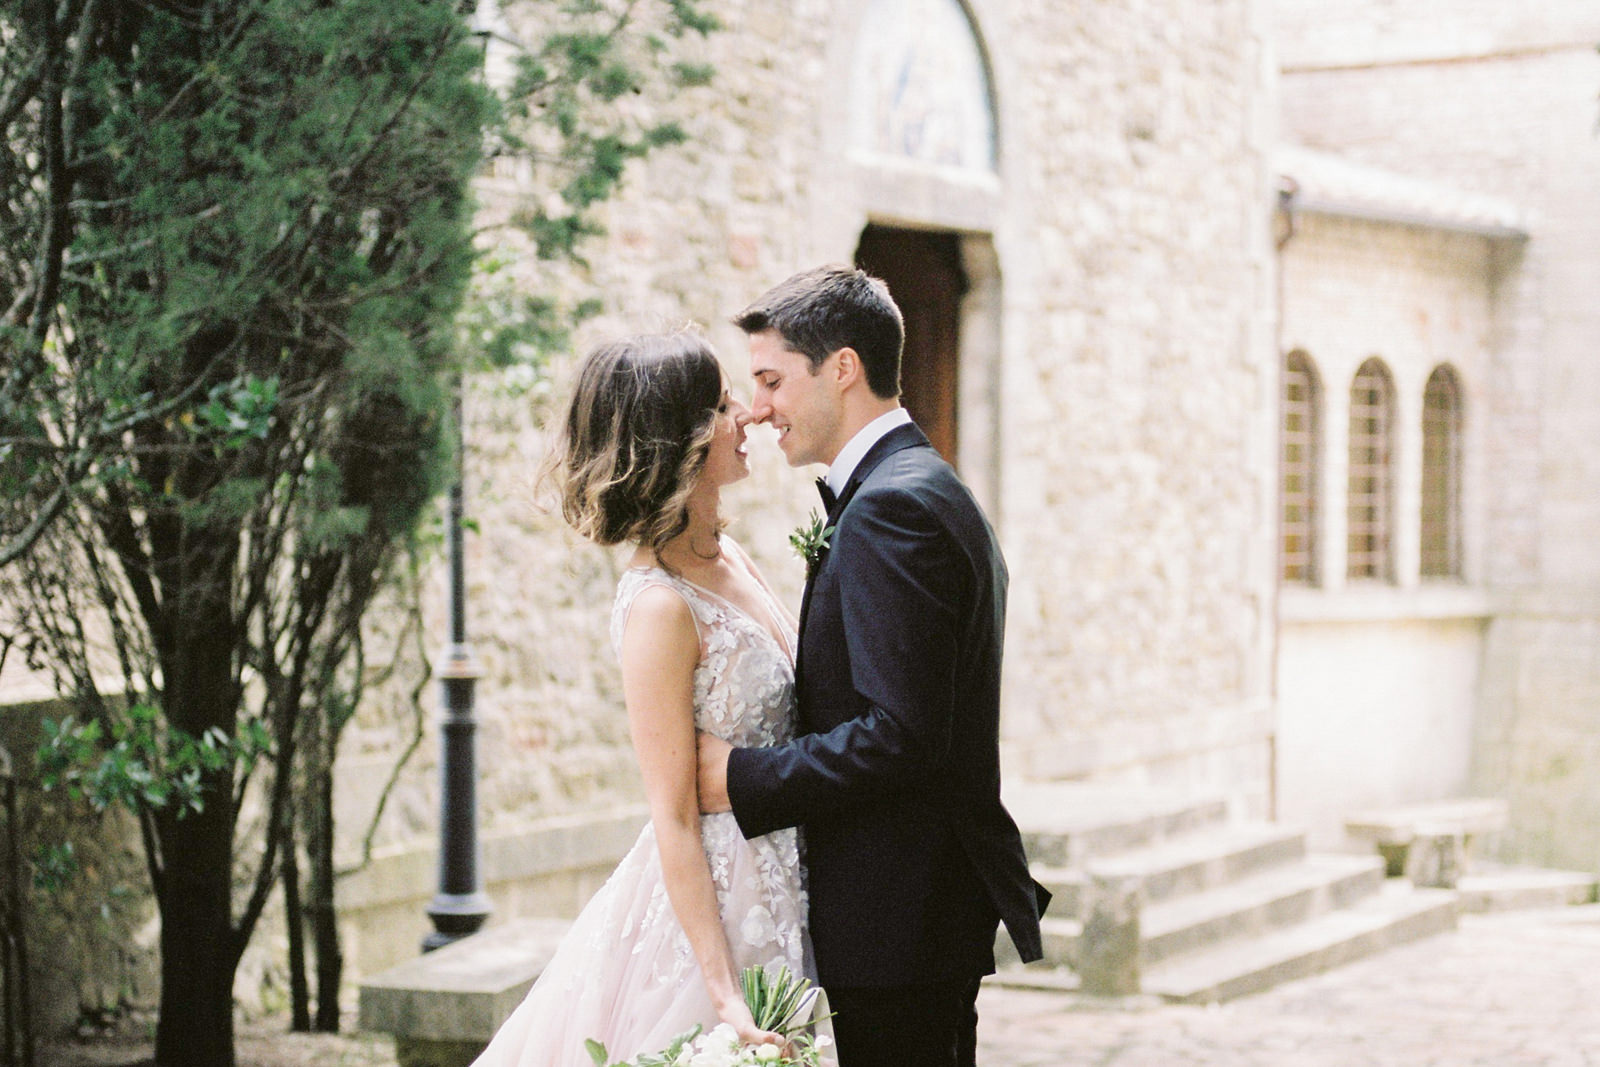 Allison & Joshua Wedding by CHYMO & MORE Photography (http://chy